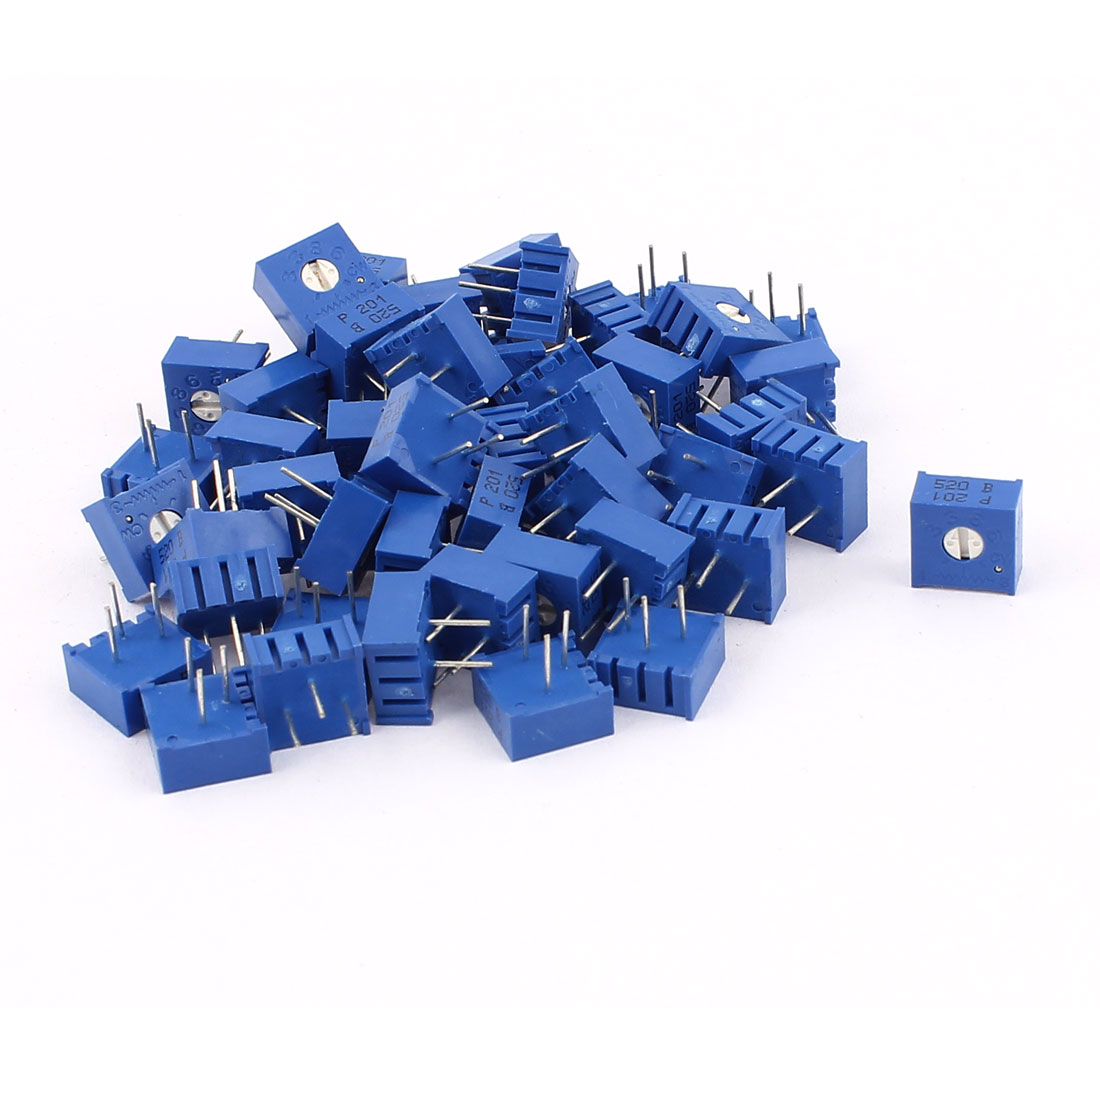 50Pcs Top Adjustment Trimmer Pot Potentiometer Resistors 200 Ohm 3386P